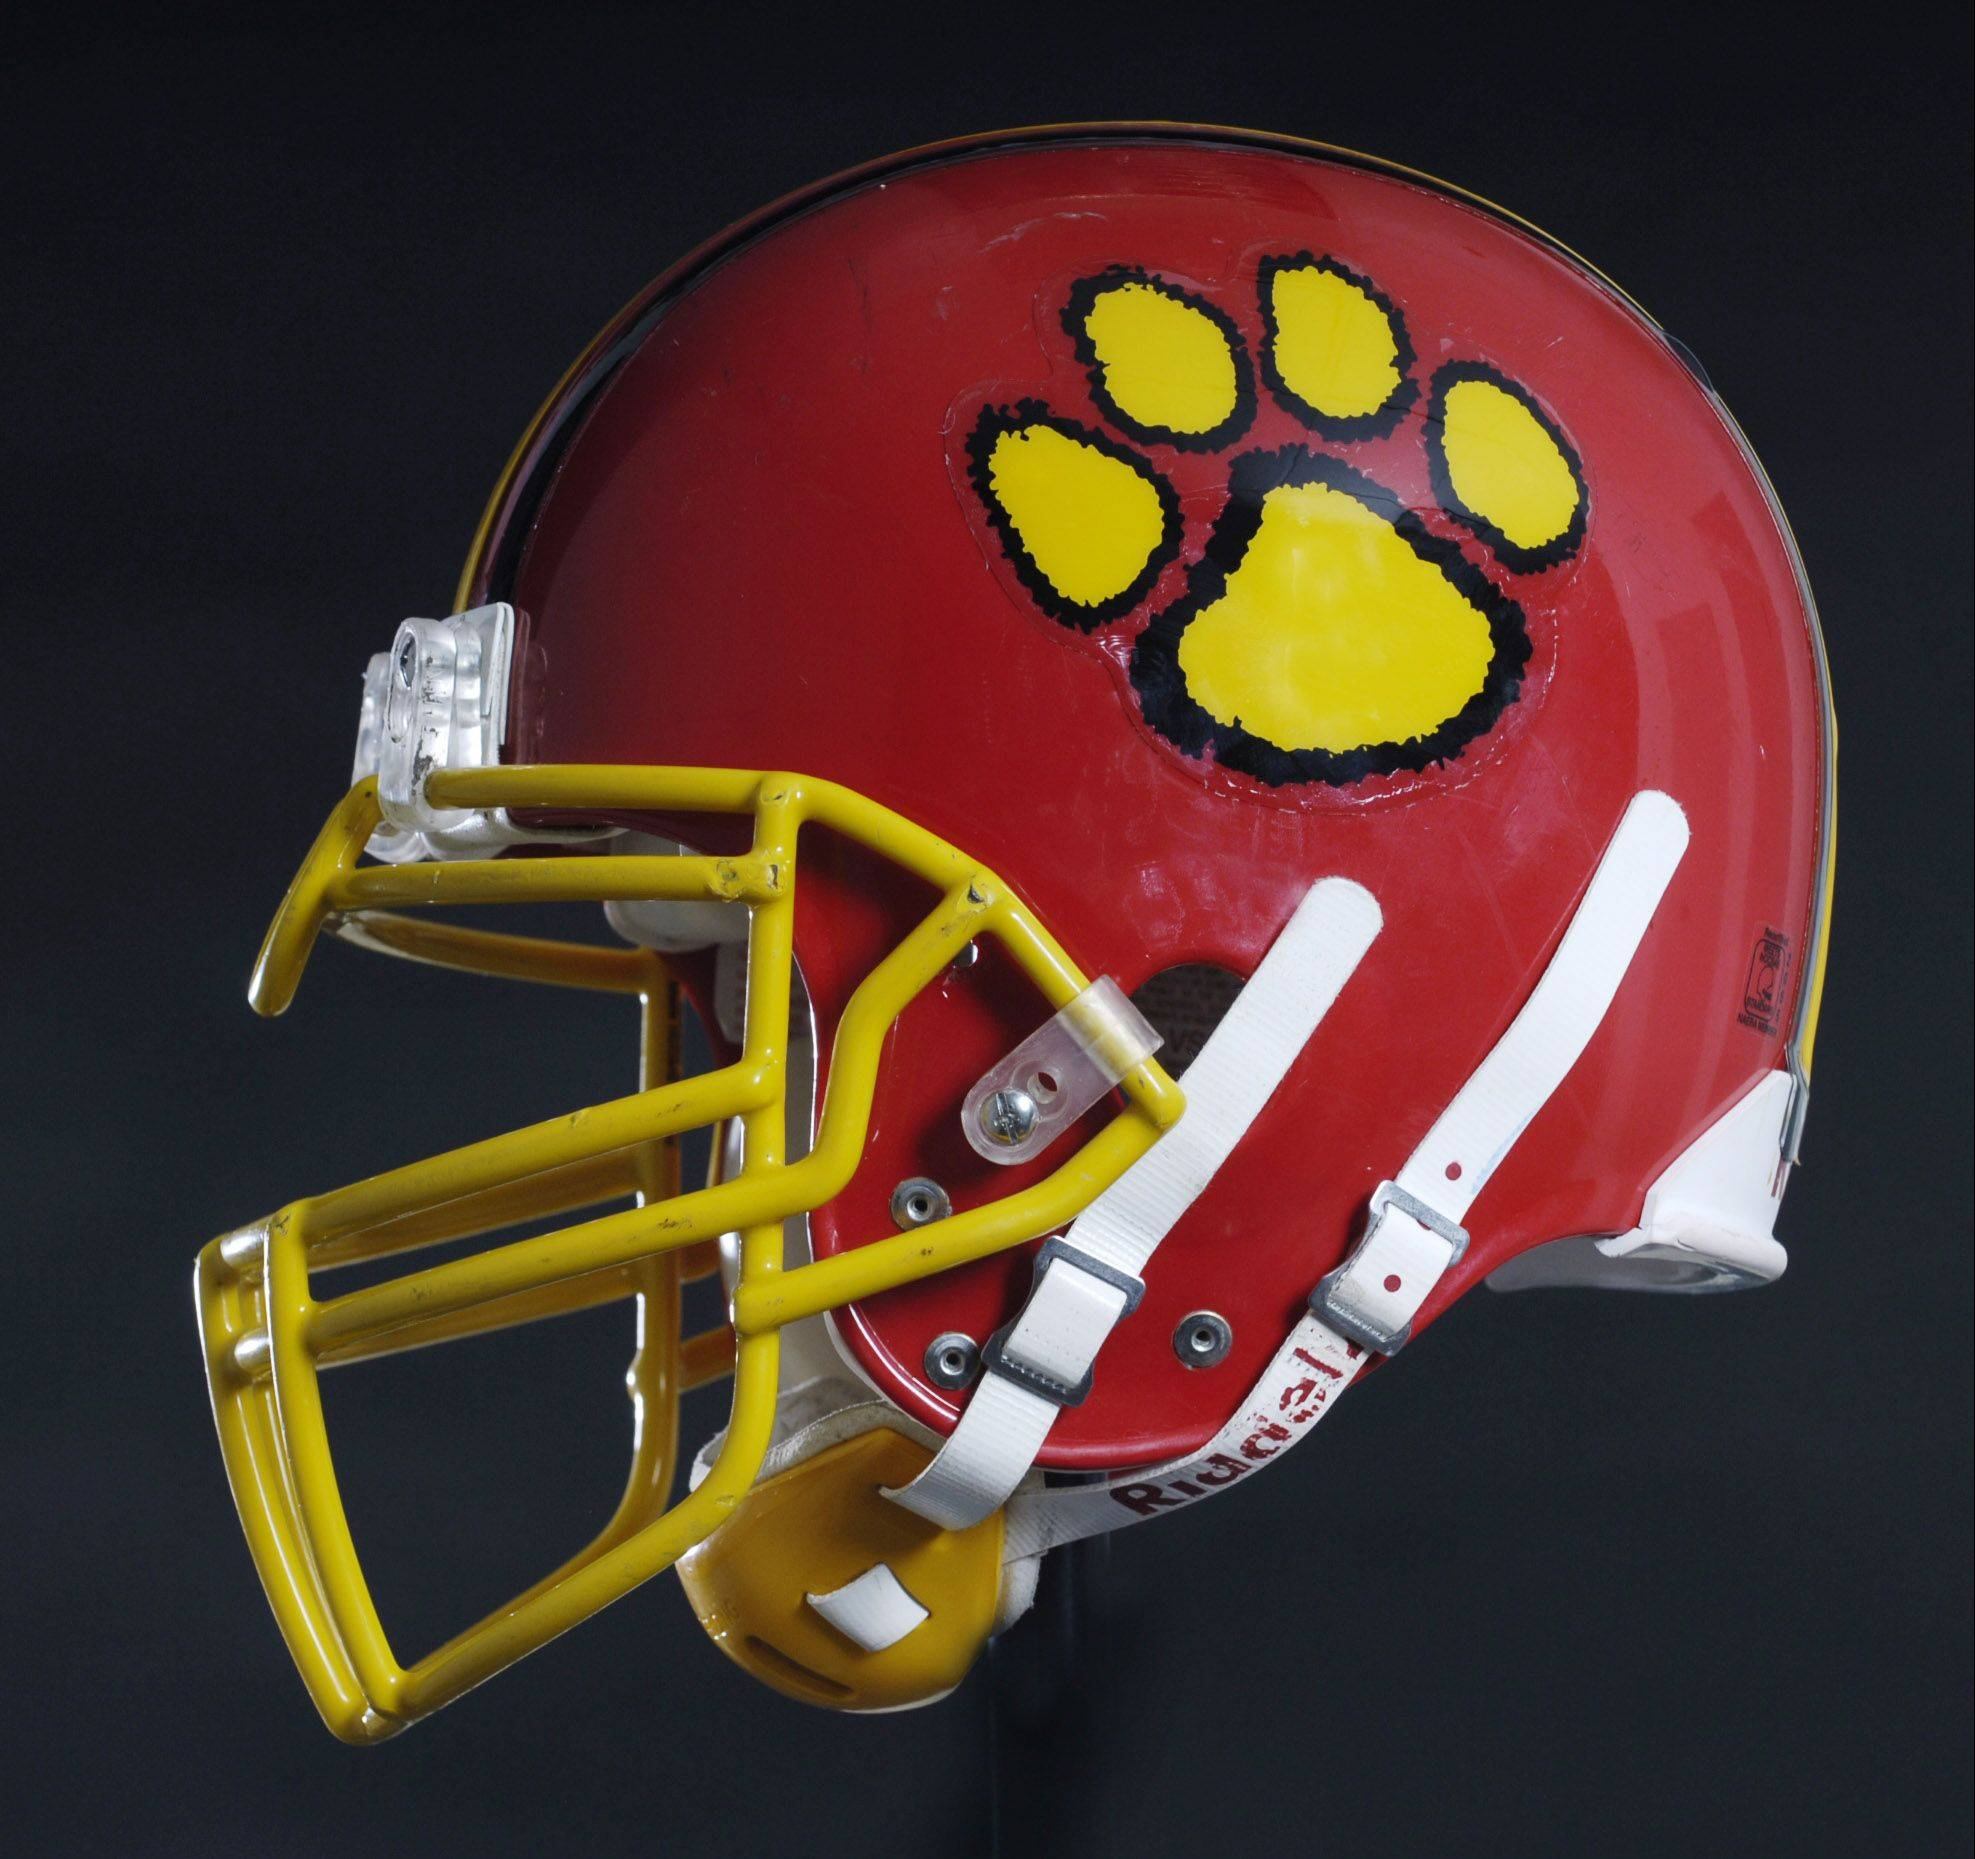 helmets_2ps092005RW photo0444592 Rick West tri ///// Batavia HS football helmet.